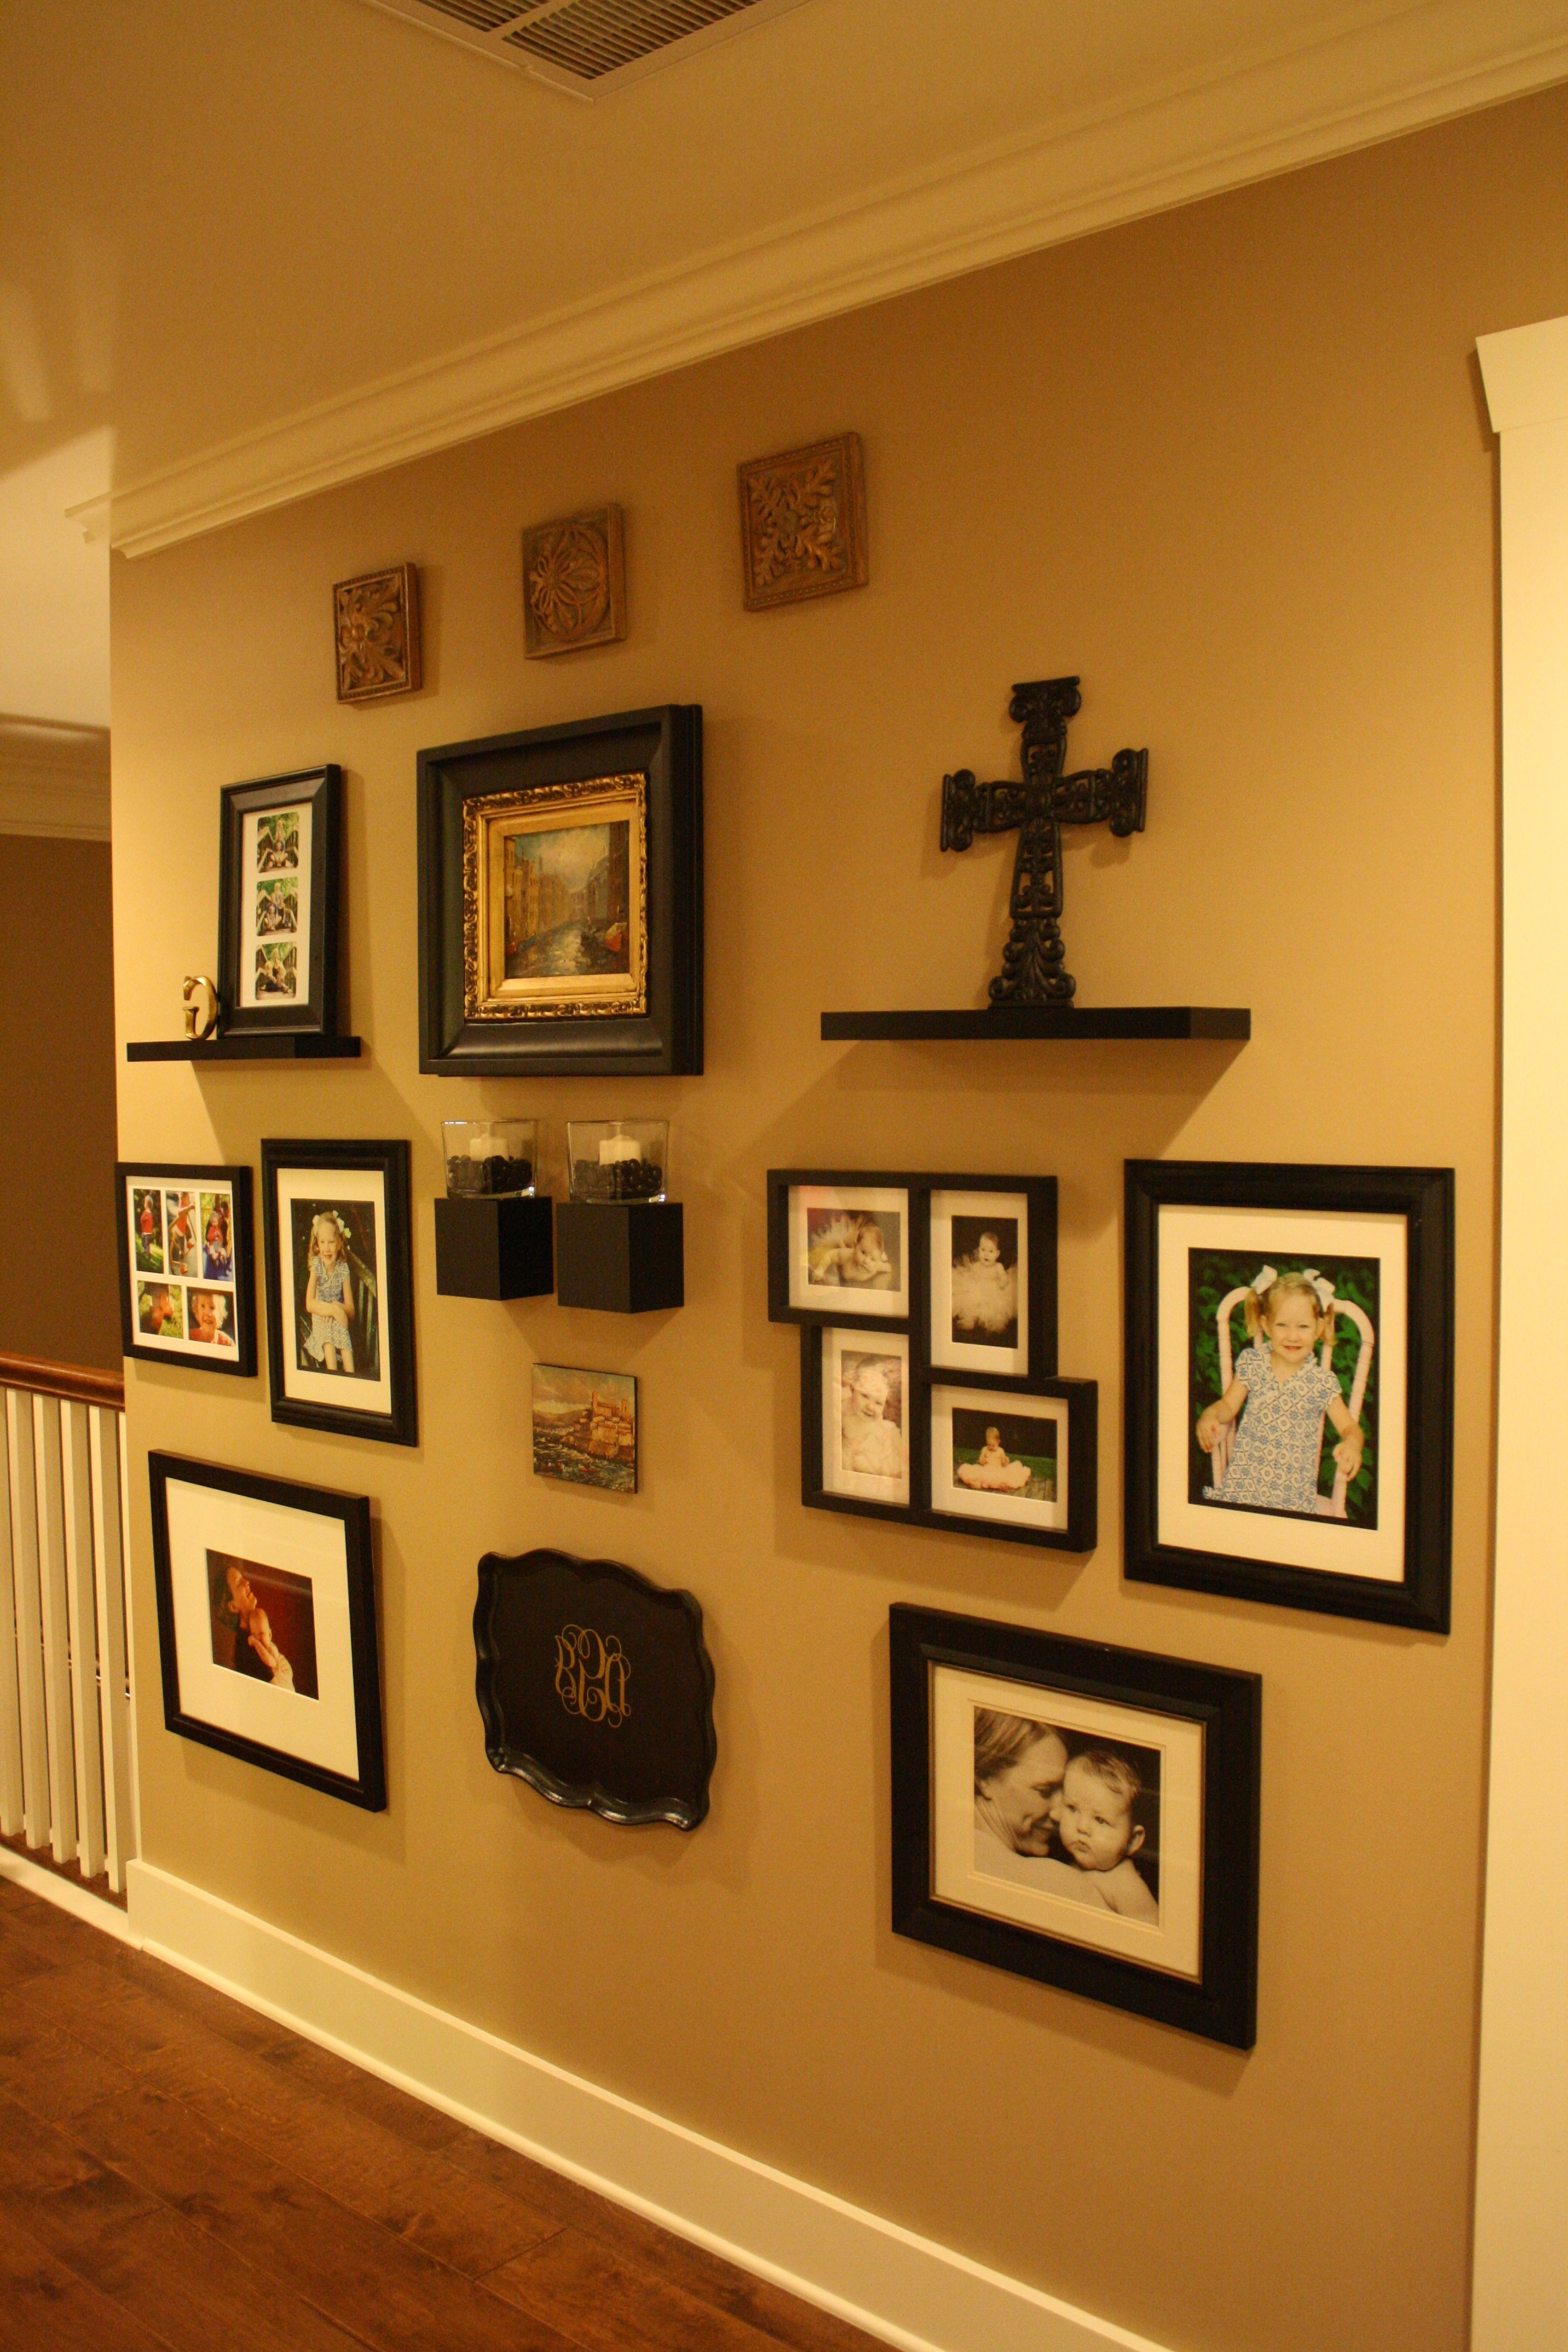 2017 Family Wall Art Picture Frames For Interior And Exterior : Fancy Family Wall Art Picture Frames M (View 11 of 15)